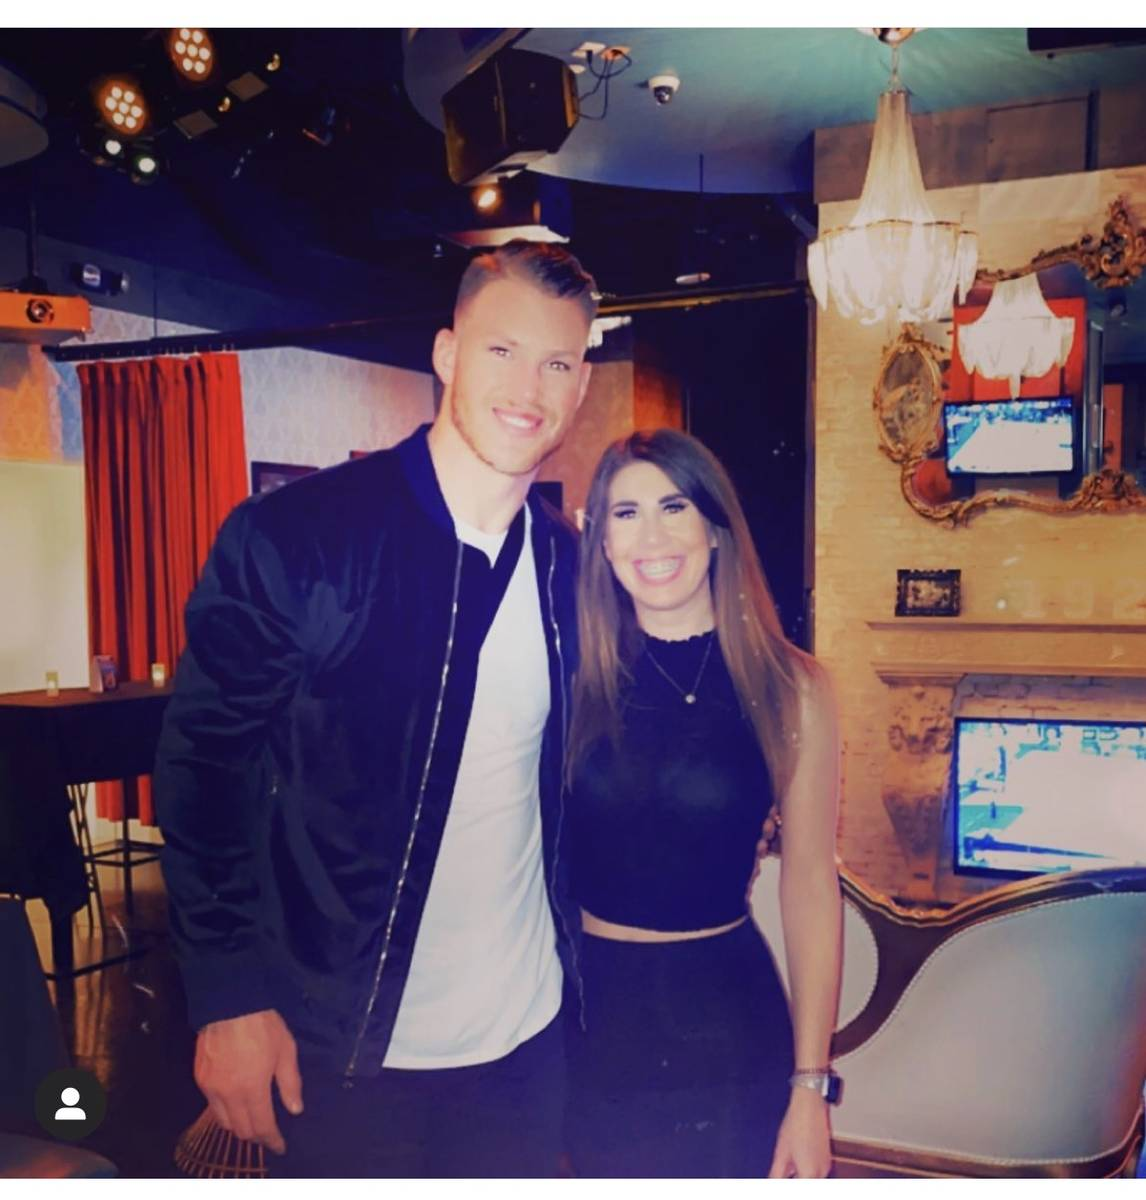 New York Giants tight end Kyle Rudolph is shown with 1923 Prohibition Bar manager Michaela Latt ...